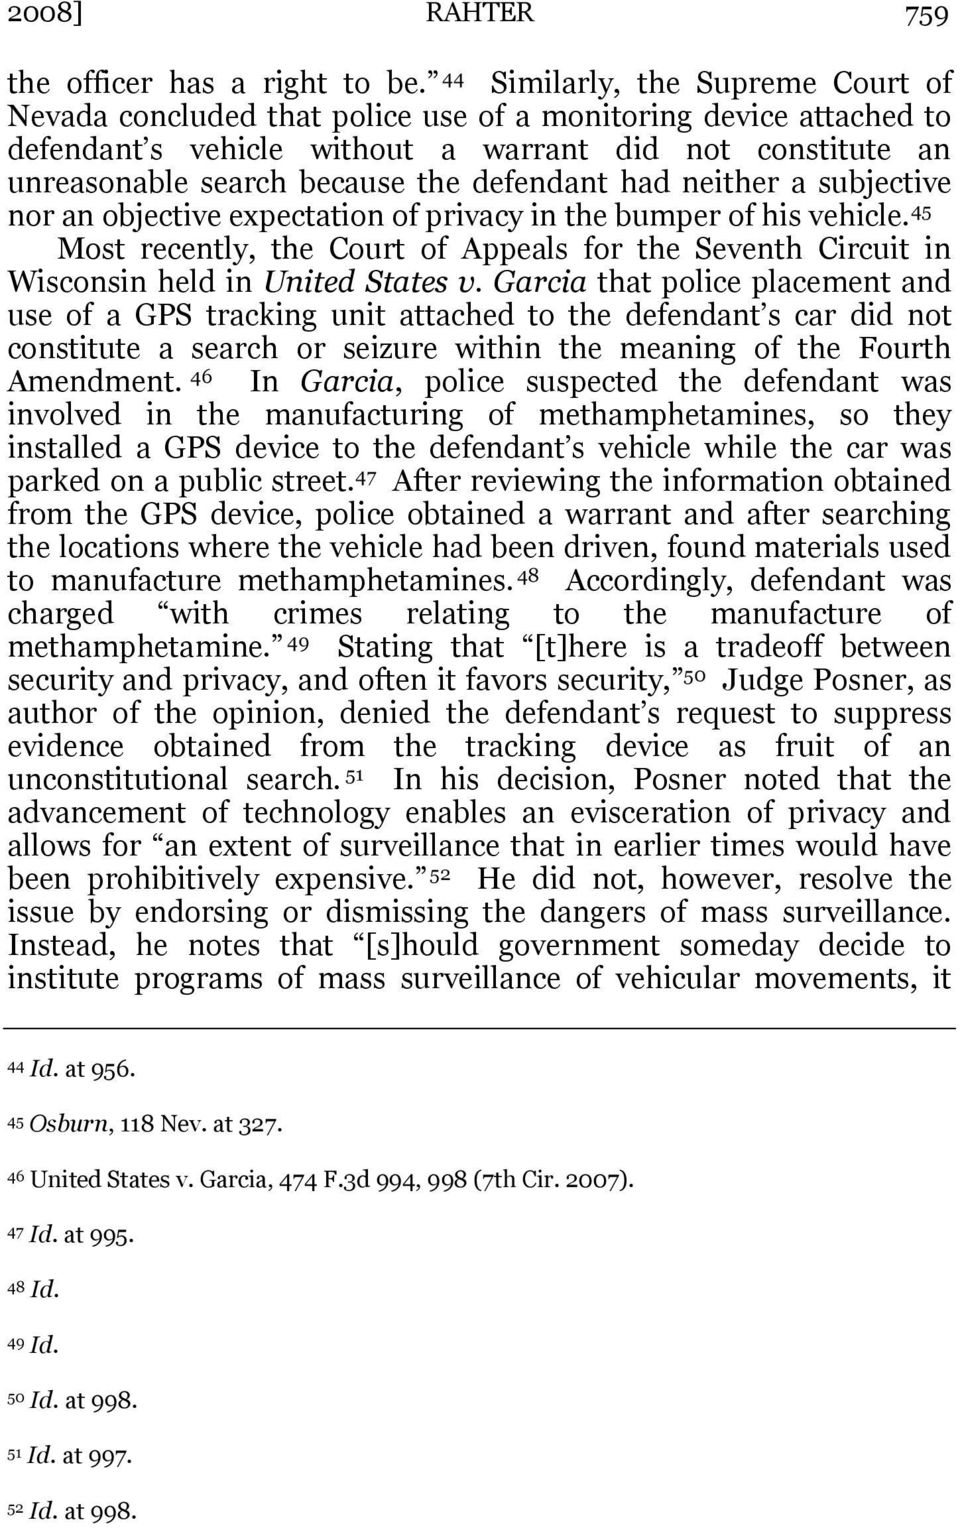 defendant had neither a subjective nor an objective expectation of privacy in the bumper of his vehicle.